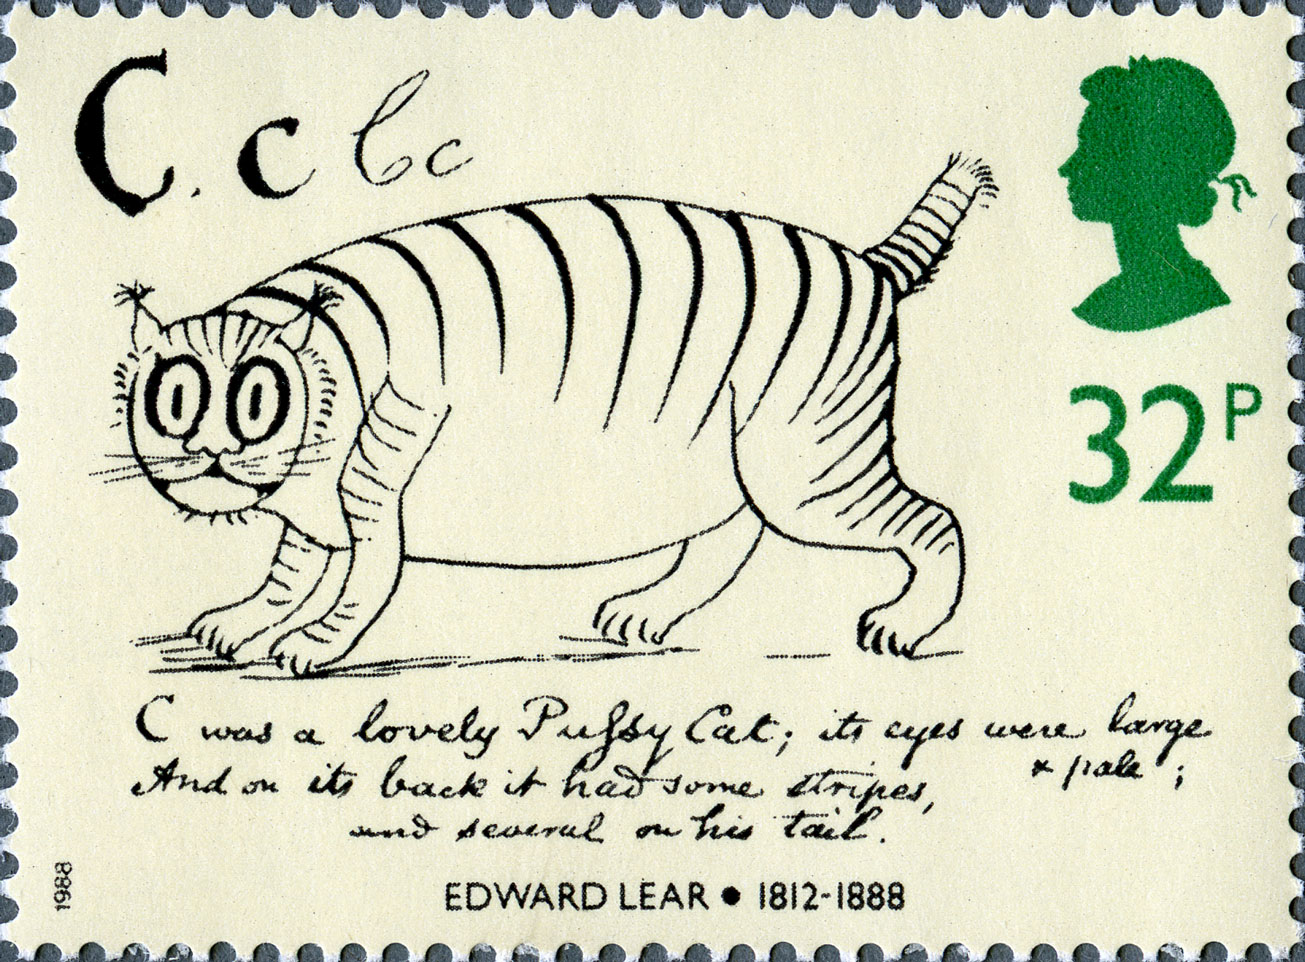 Stamp depicting an illustration of a stripped cat.